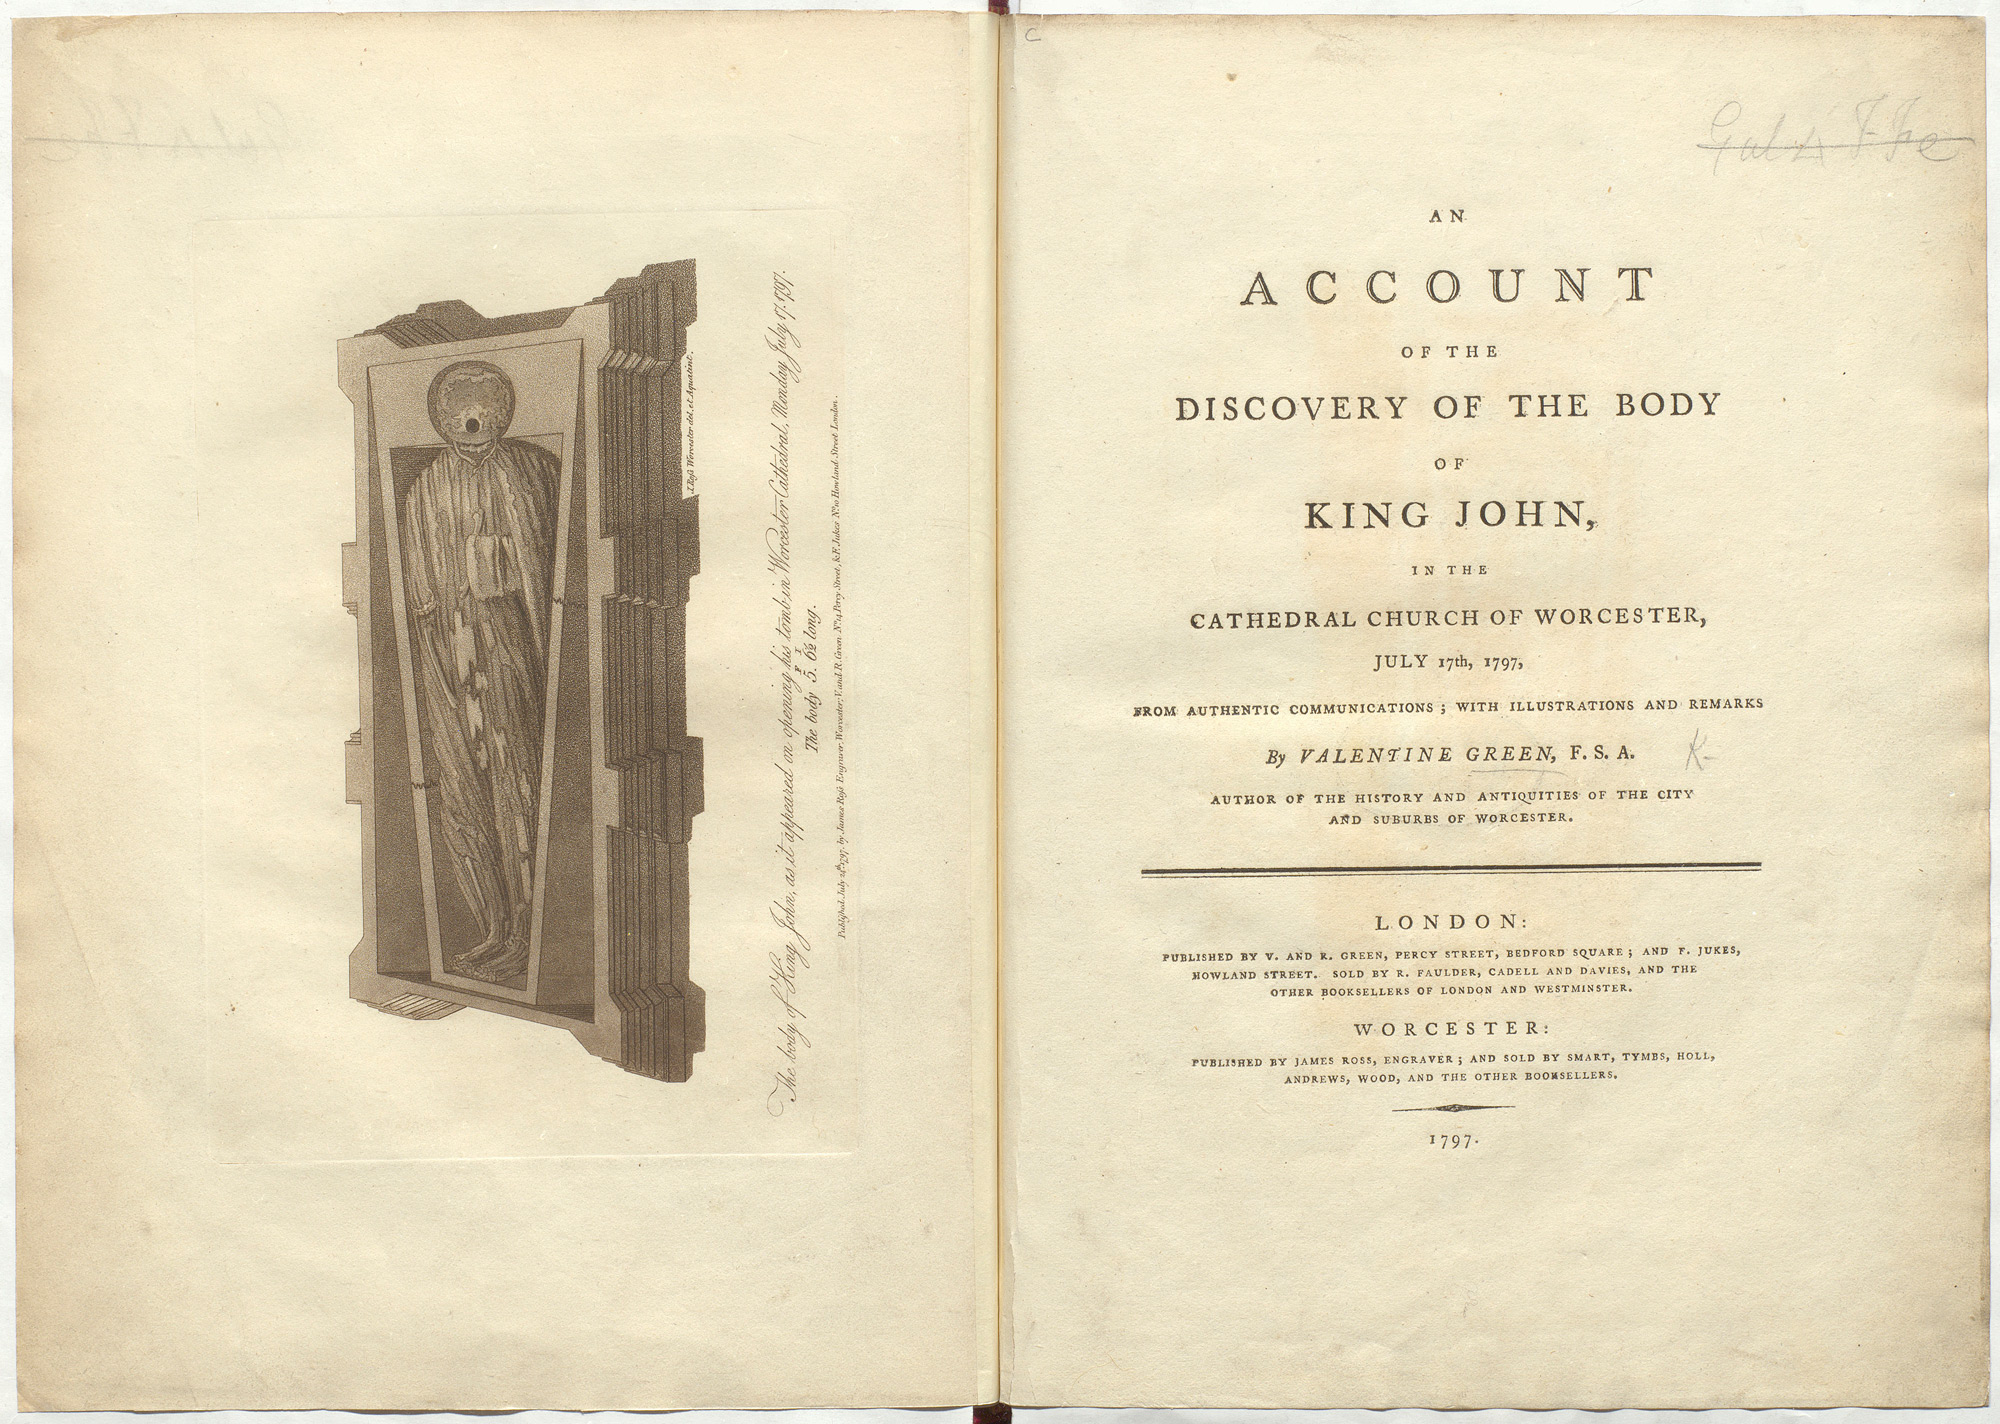 Account about opening King John's tomb